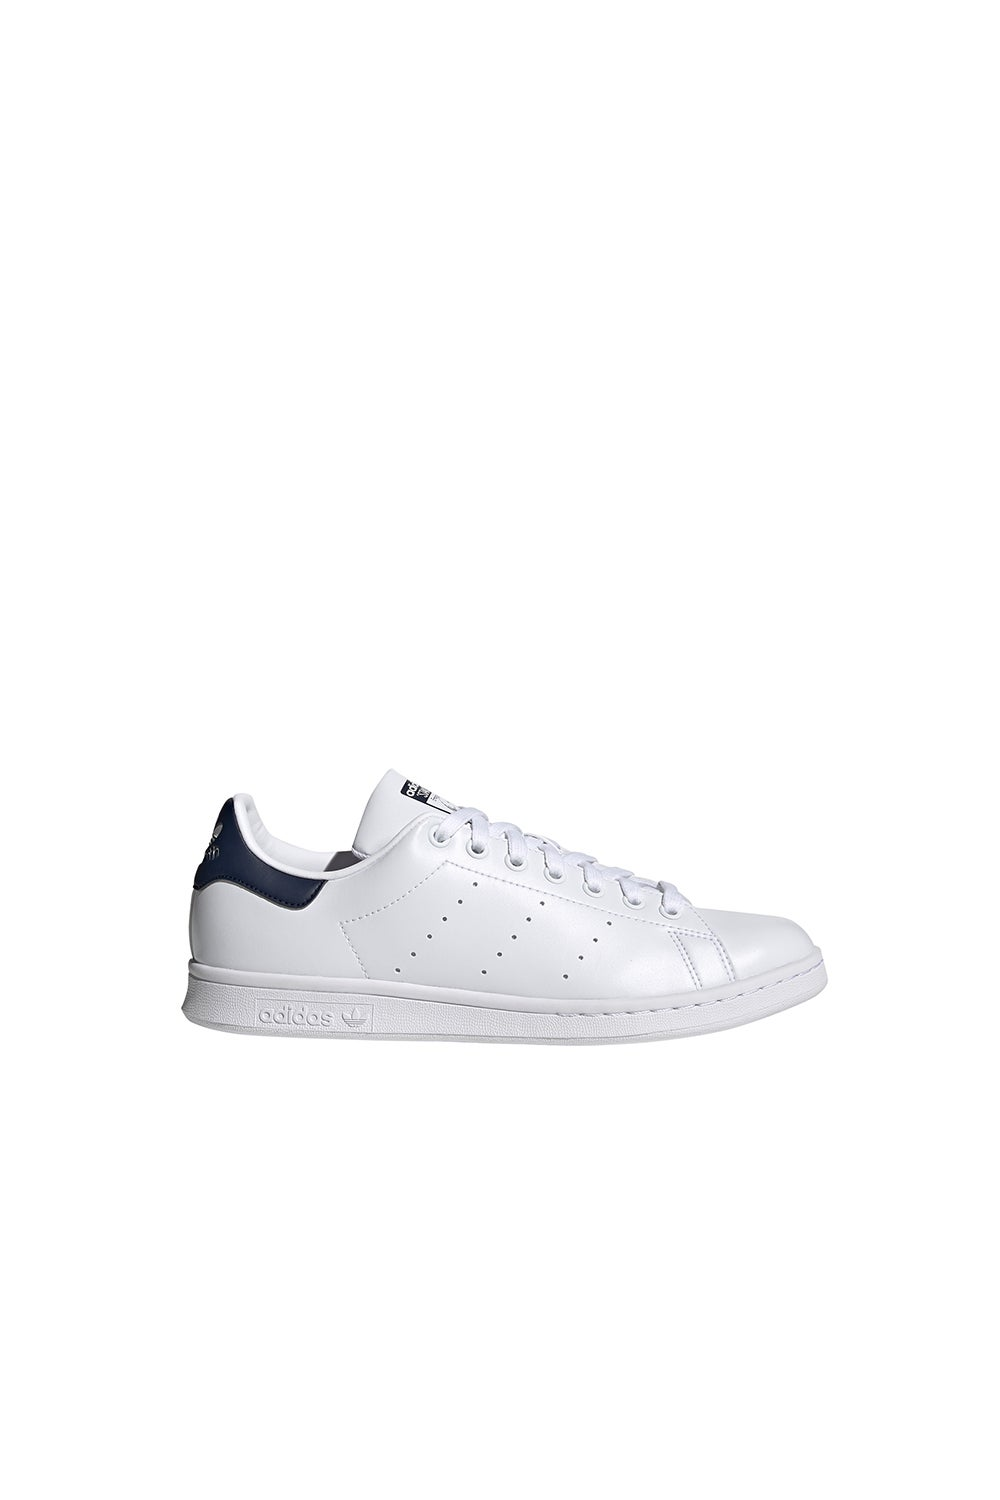 adidas Stan Smith Cloud White/Collegiate Navy